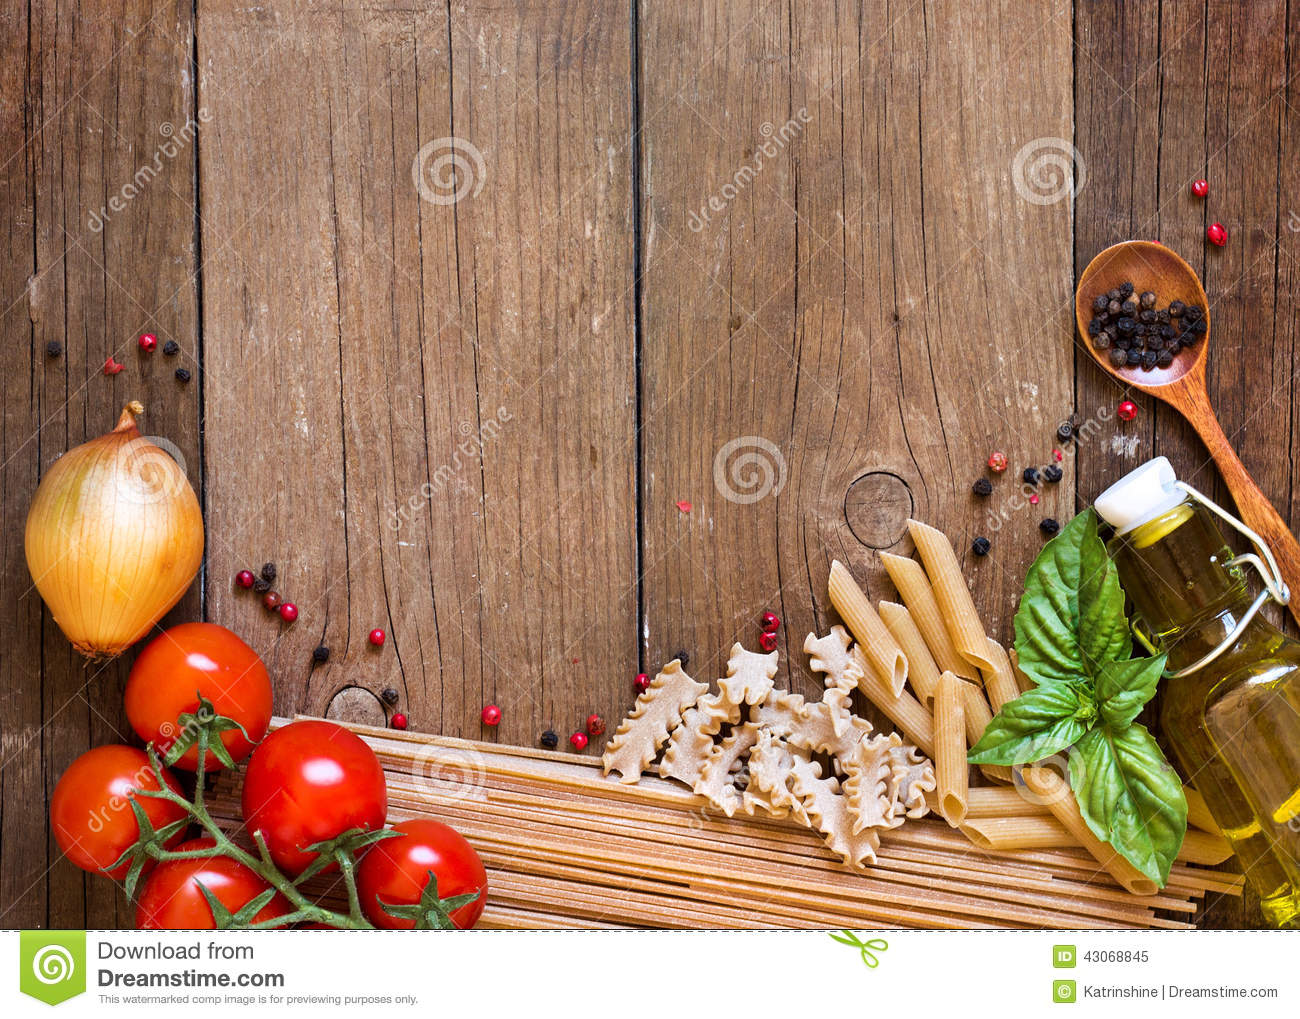 Pasta, tomatoes, onion, olive oil and basil on wooden background